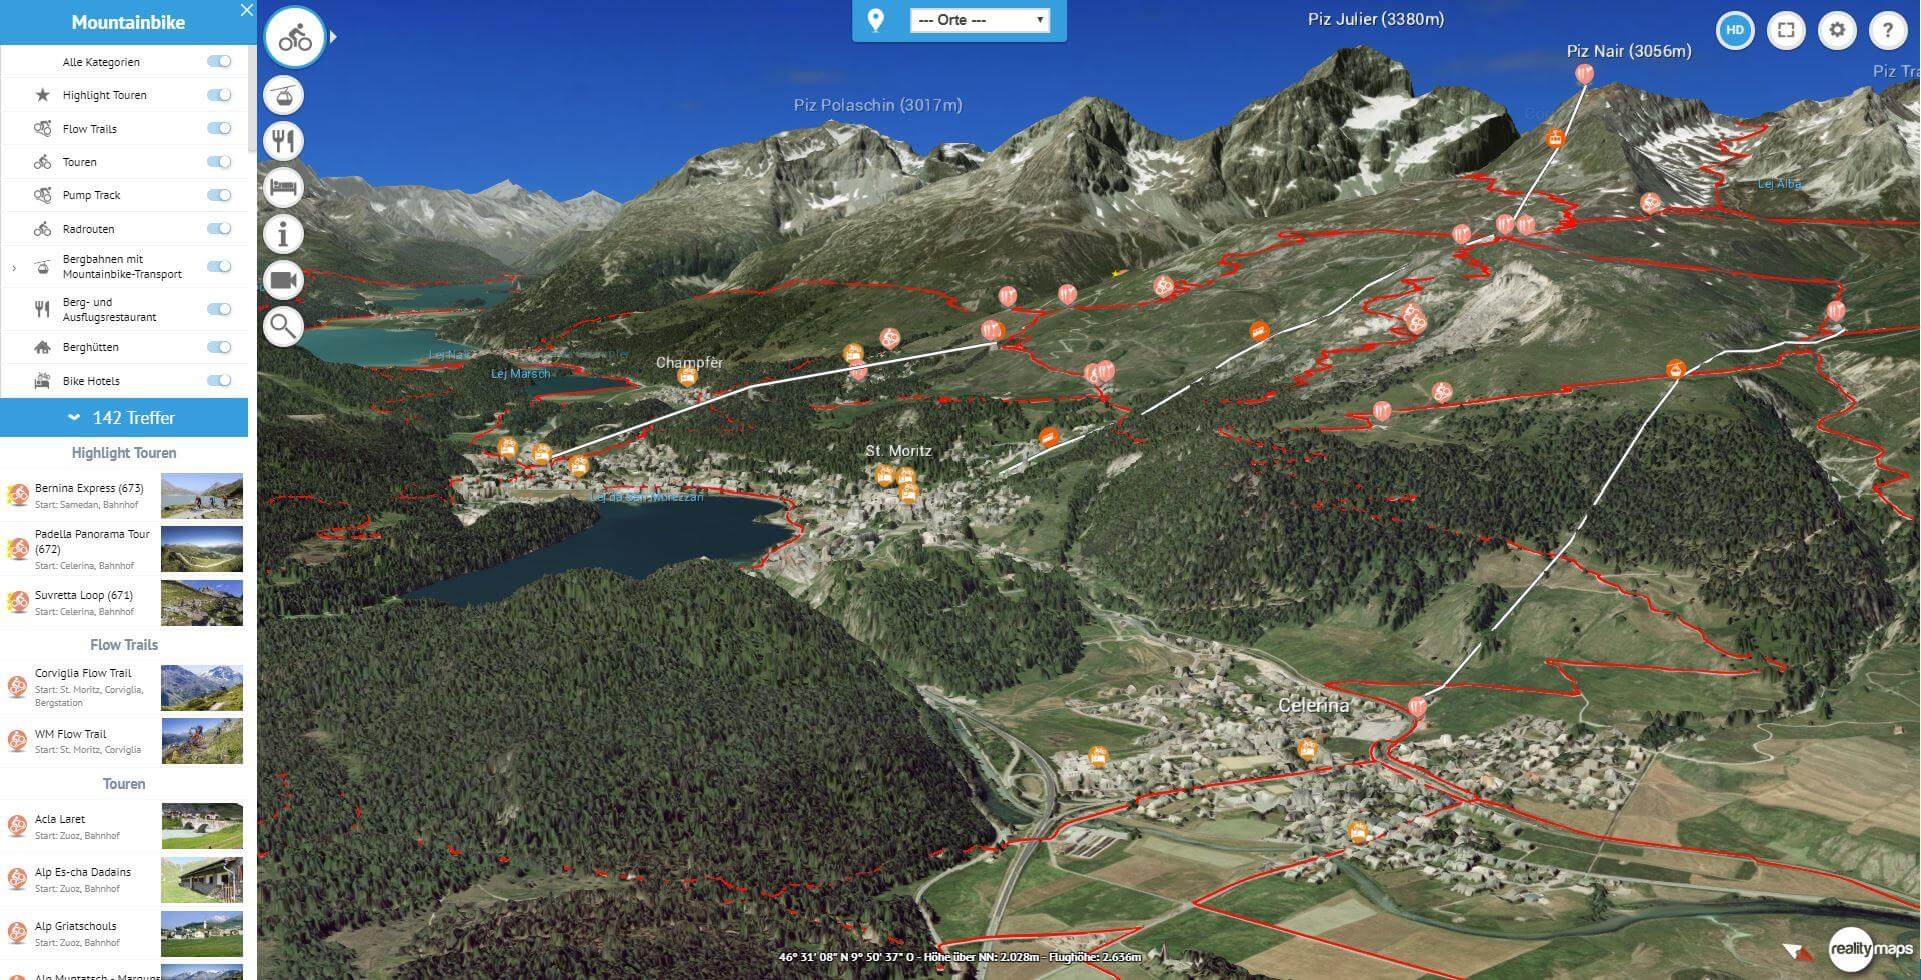 Engadin-St. Moritz & Davos-Klosters in 3D » Sommer | 3D RealityMaps